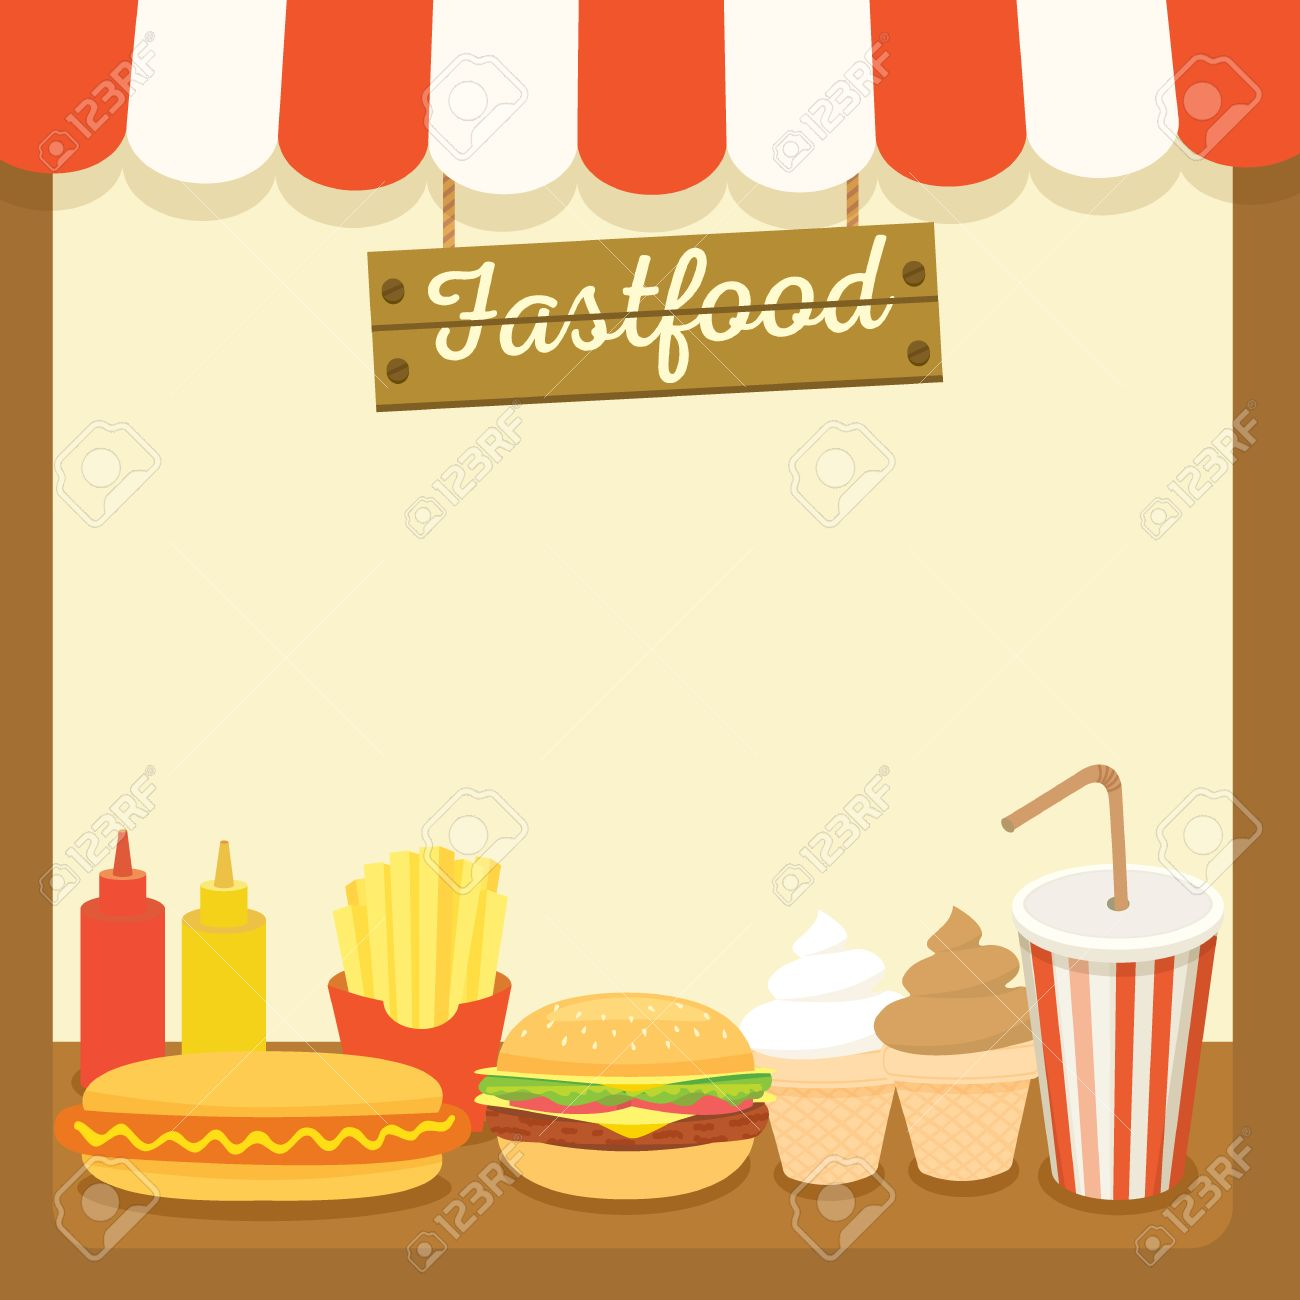 illustration vector of fastfood drink and dessert menu template